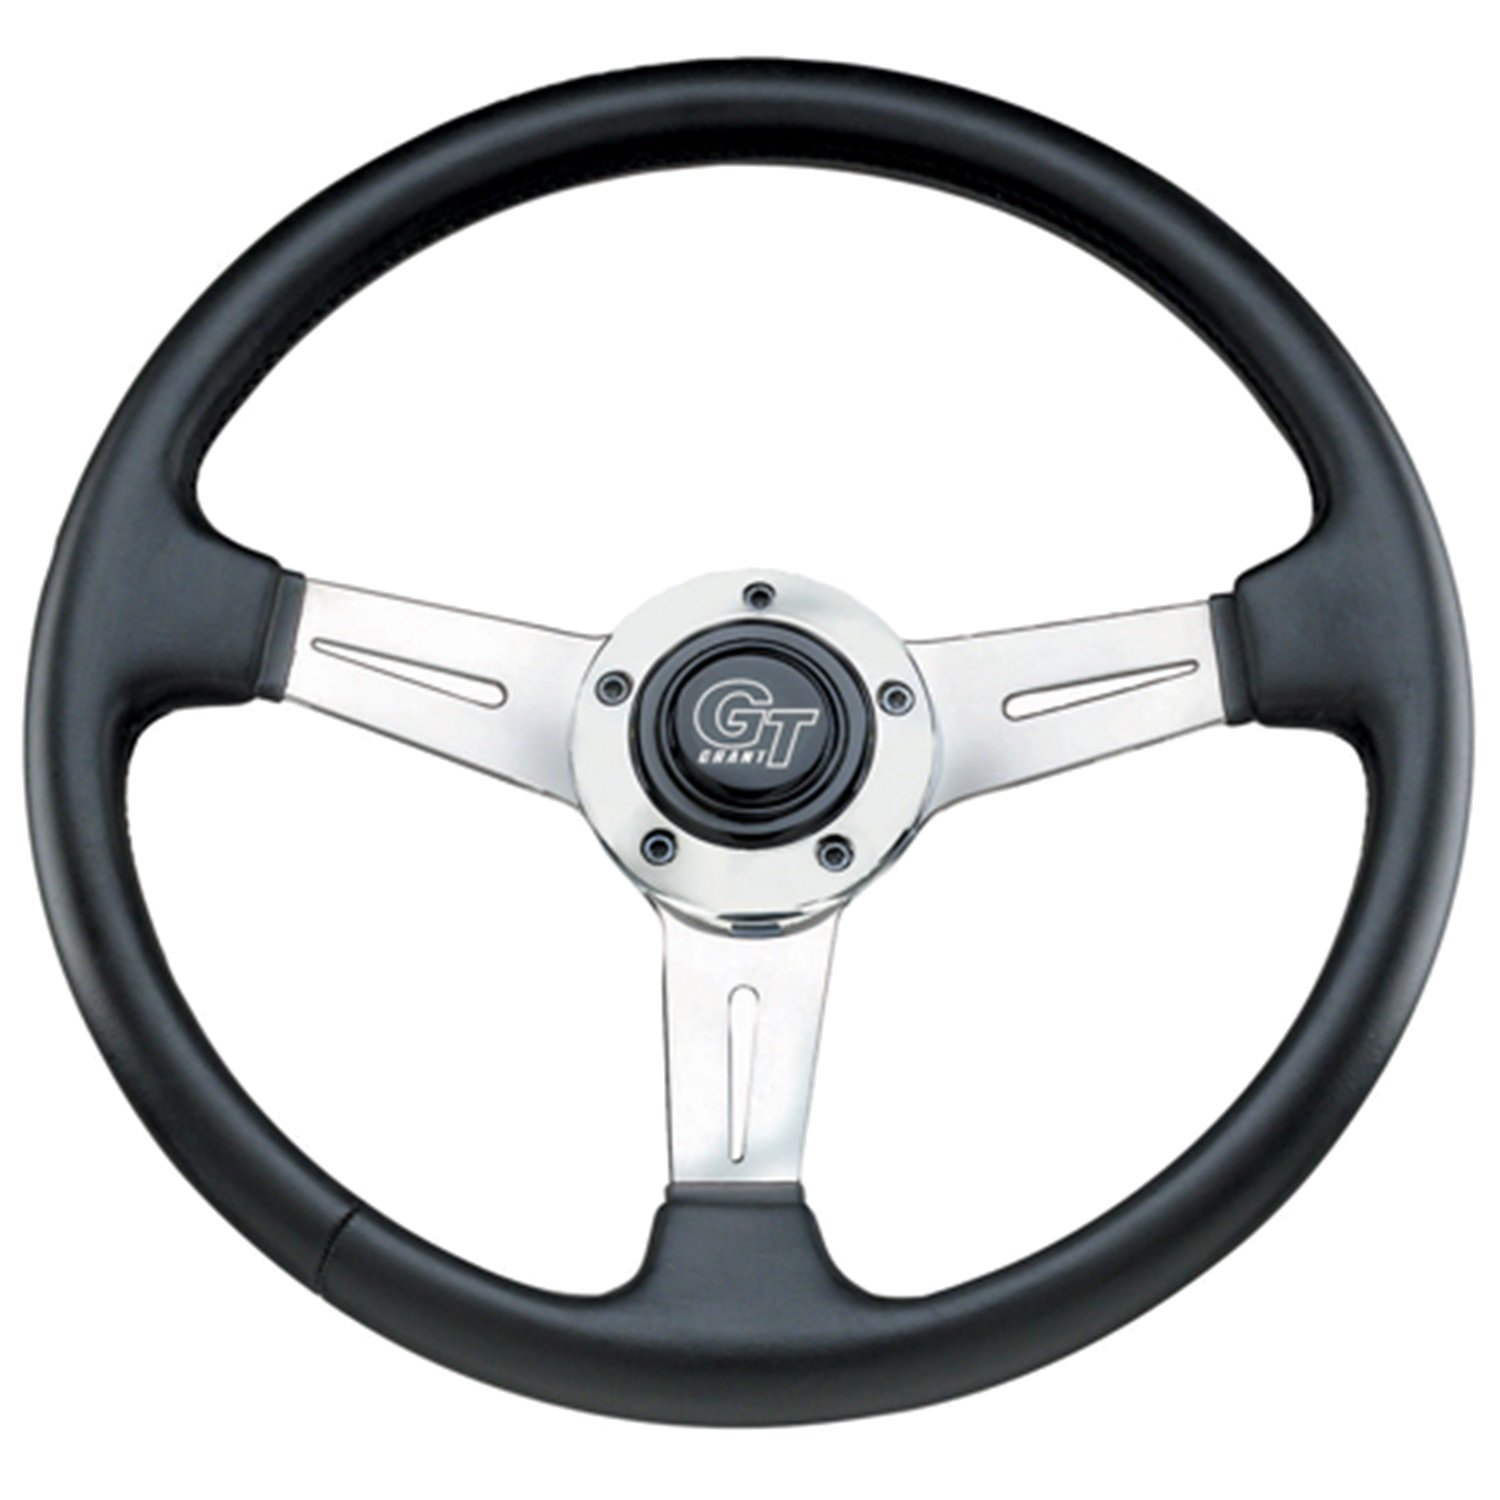 Grant Products 739 Elite GT Wheel